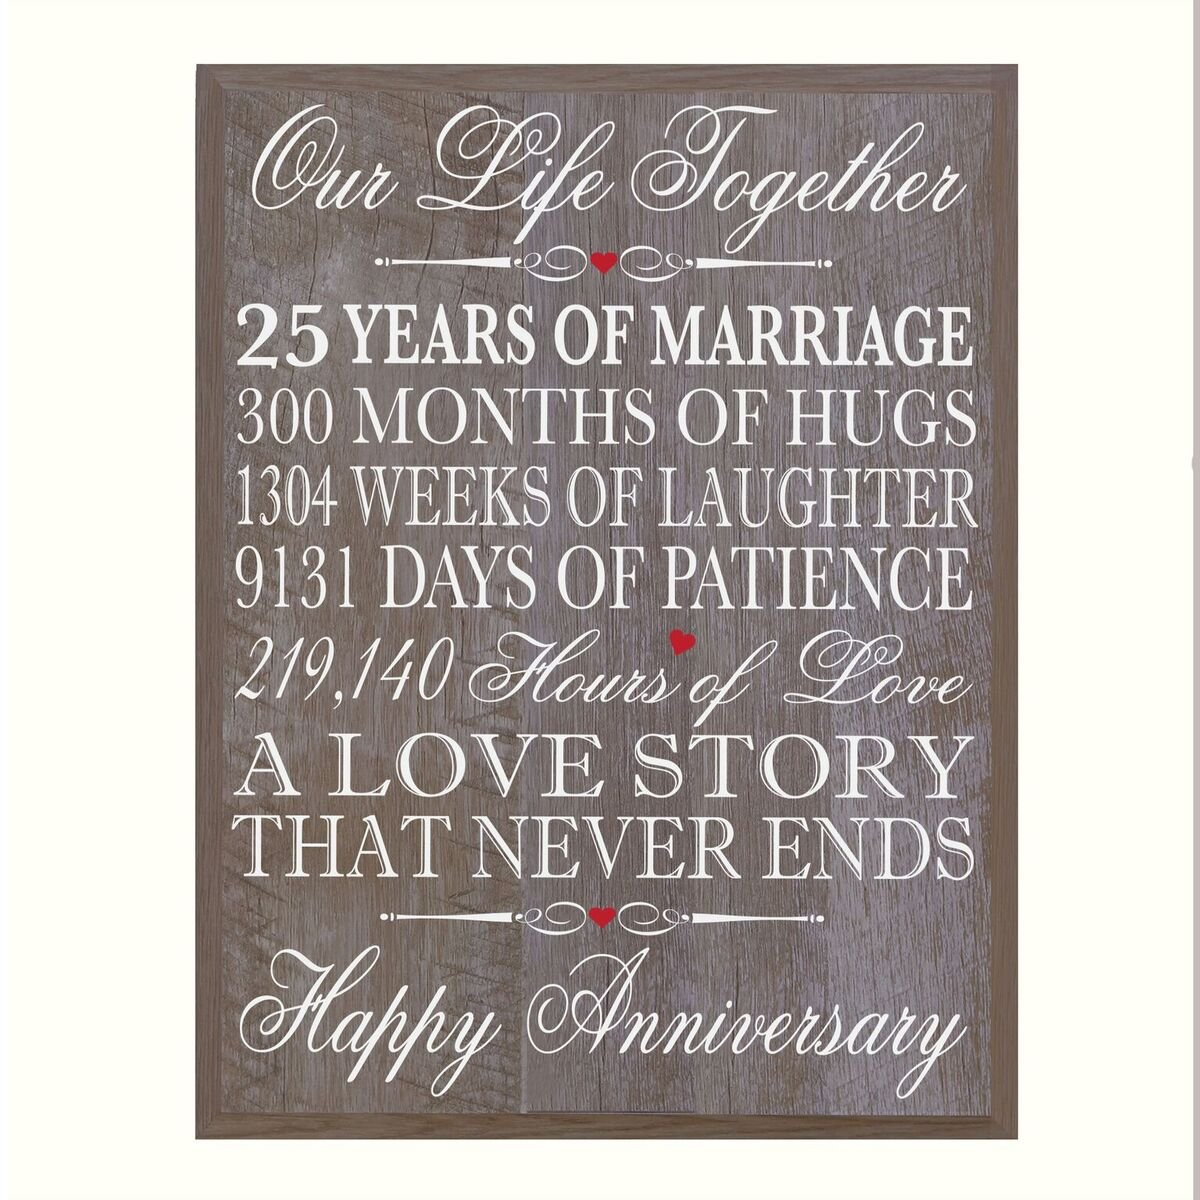 LifeSong Milestones 25th Wedding Anniversary Wall Plaque Gifts for Couple, 25th for Her,25th Wedding for Him 12'' W X 15'' H Wall Plaque (Barnwood) by LifeSong Milestones